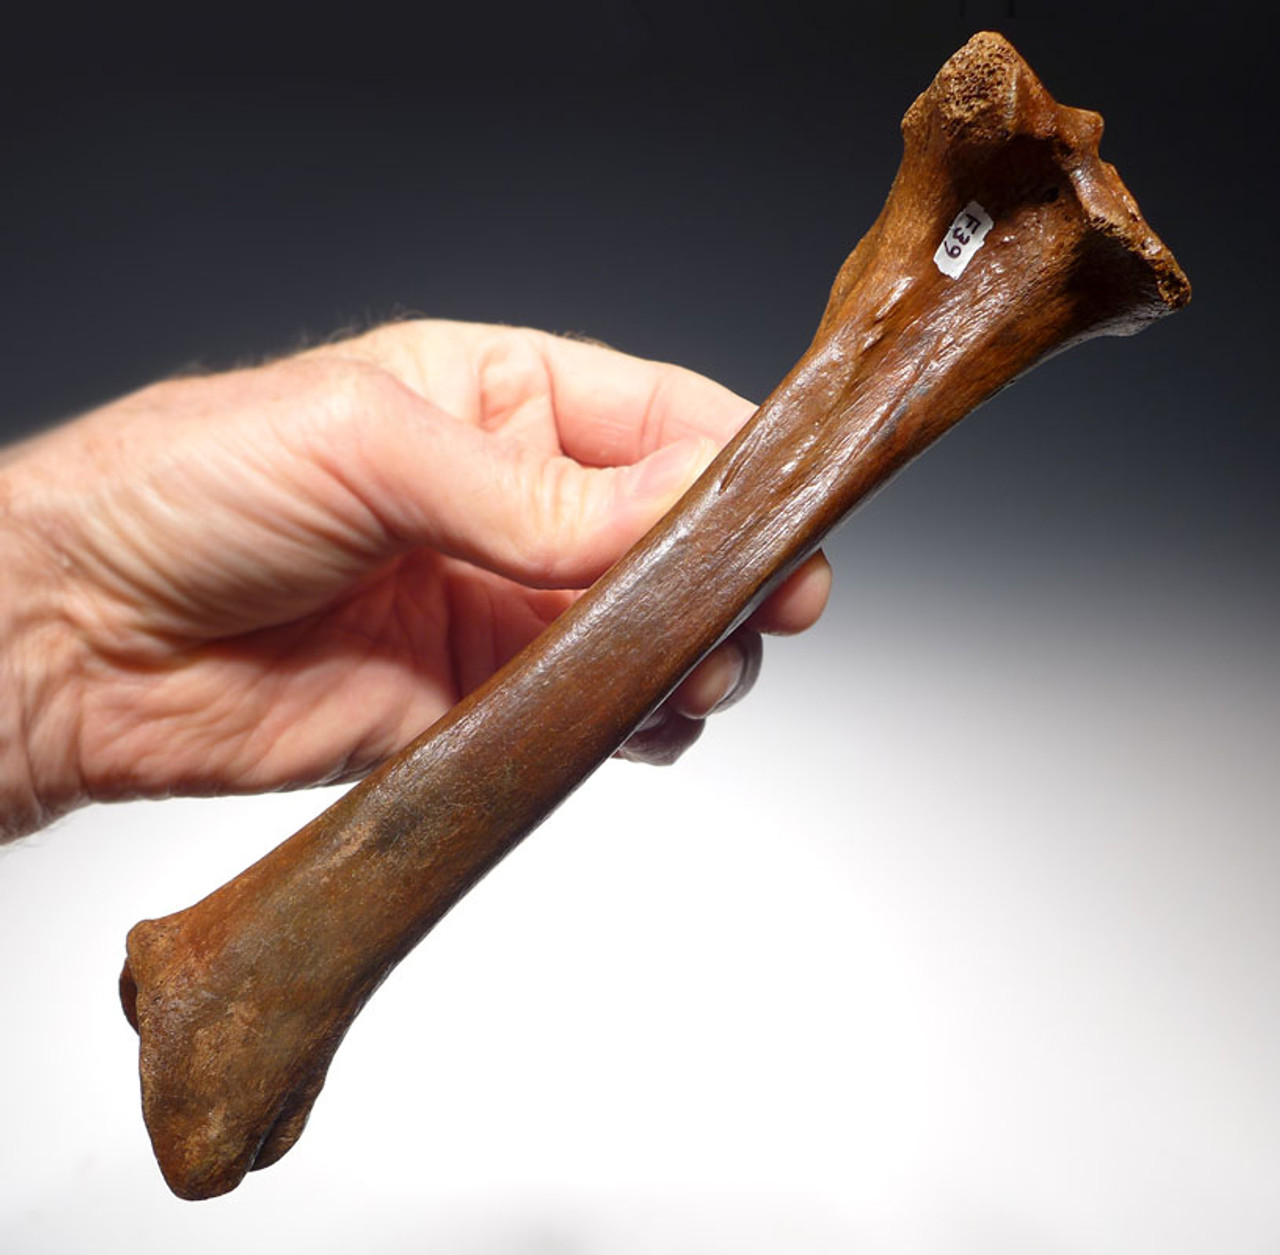 LMX103 - RARE COMPLETE EUROPEAN CAVE HYENA  LEFT TIBIA LEG BONE WITH UNUSUALLY FINE PRESERVATION